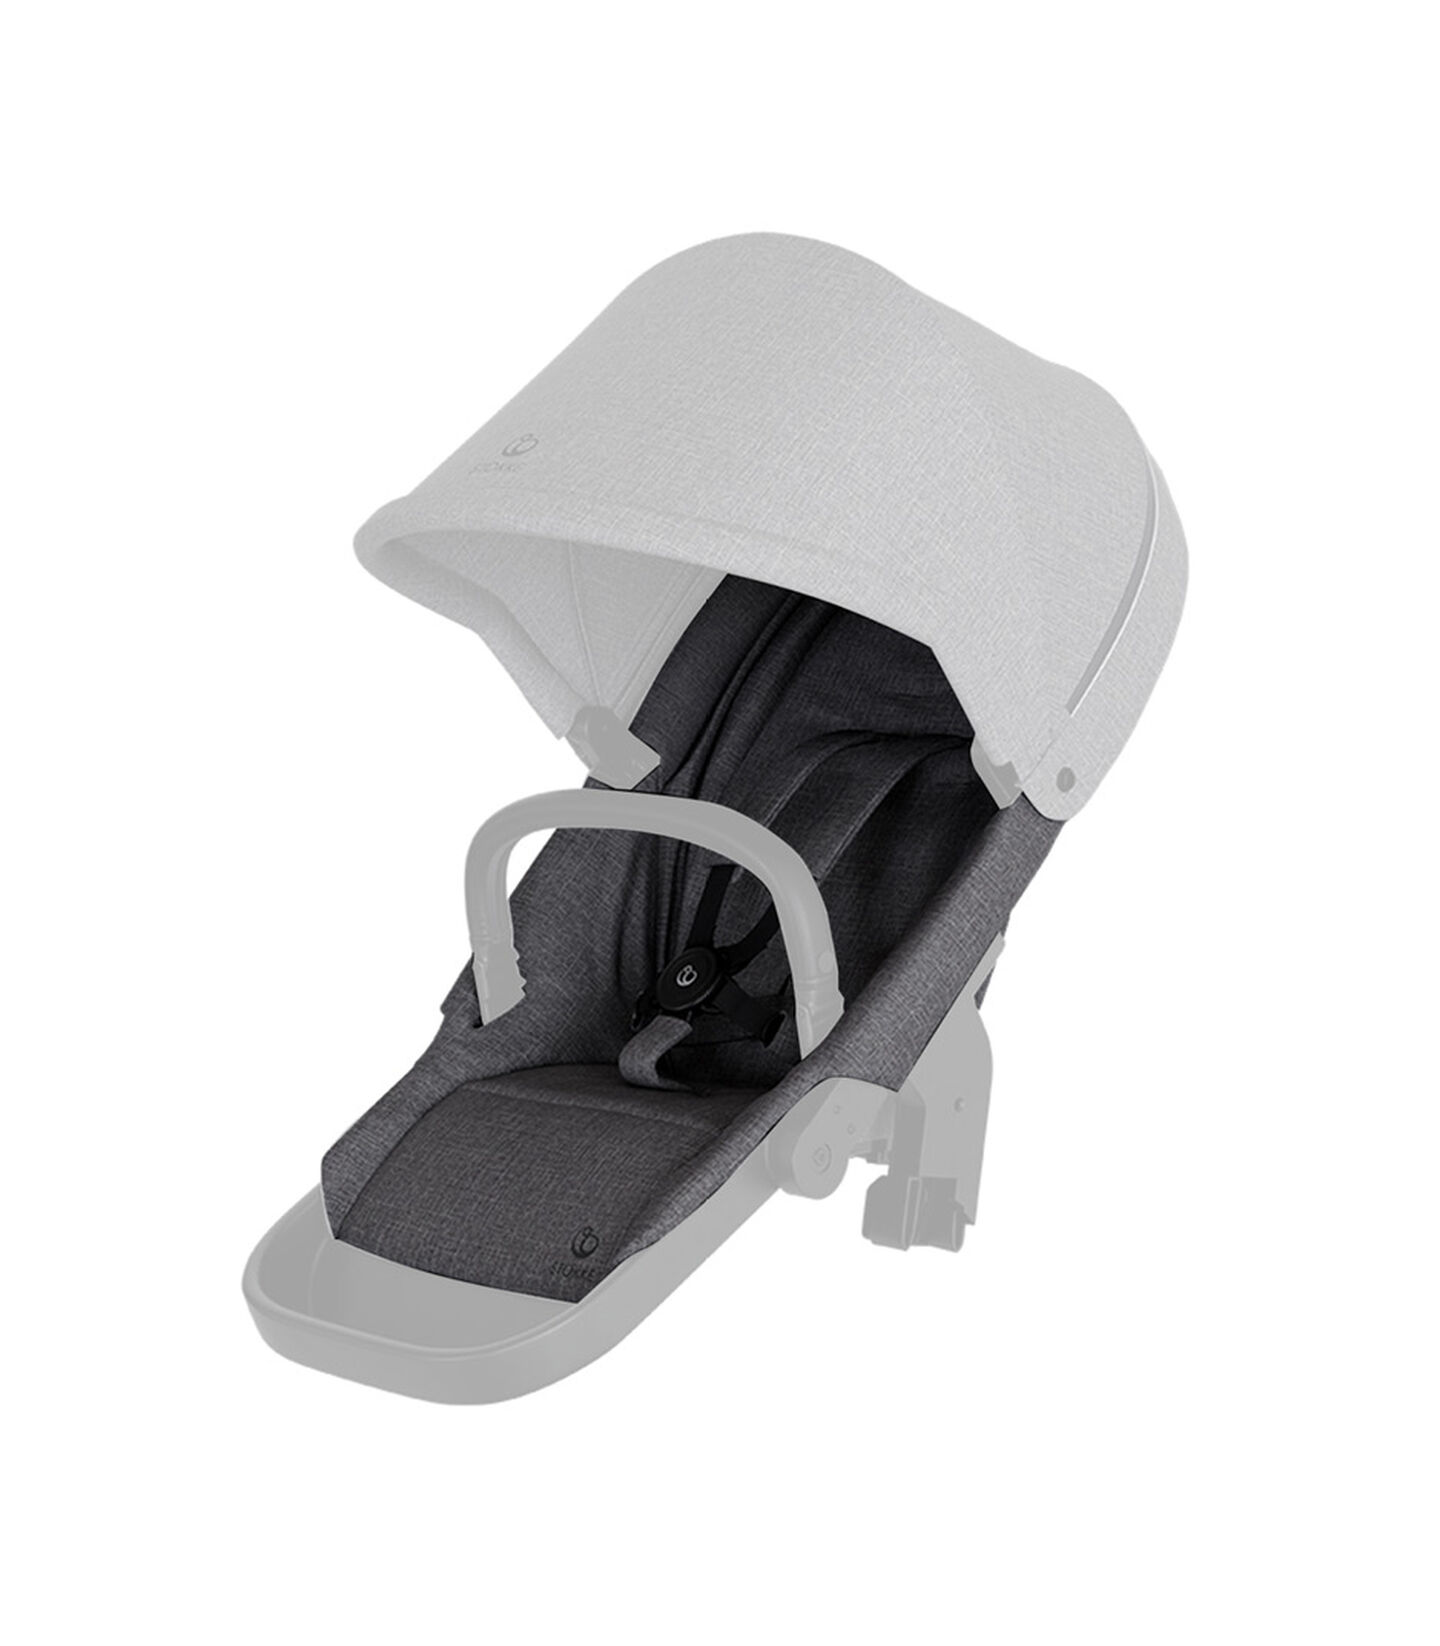 Stokke® Beat seat textile BlackMel wo Can Harness Shpg Baske, Negro Melange, mainview